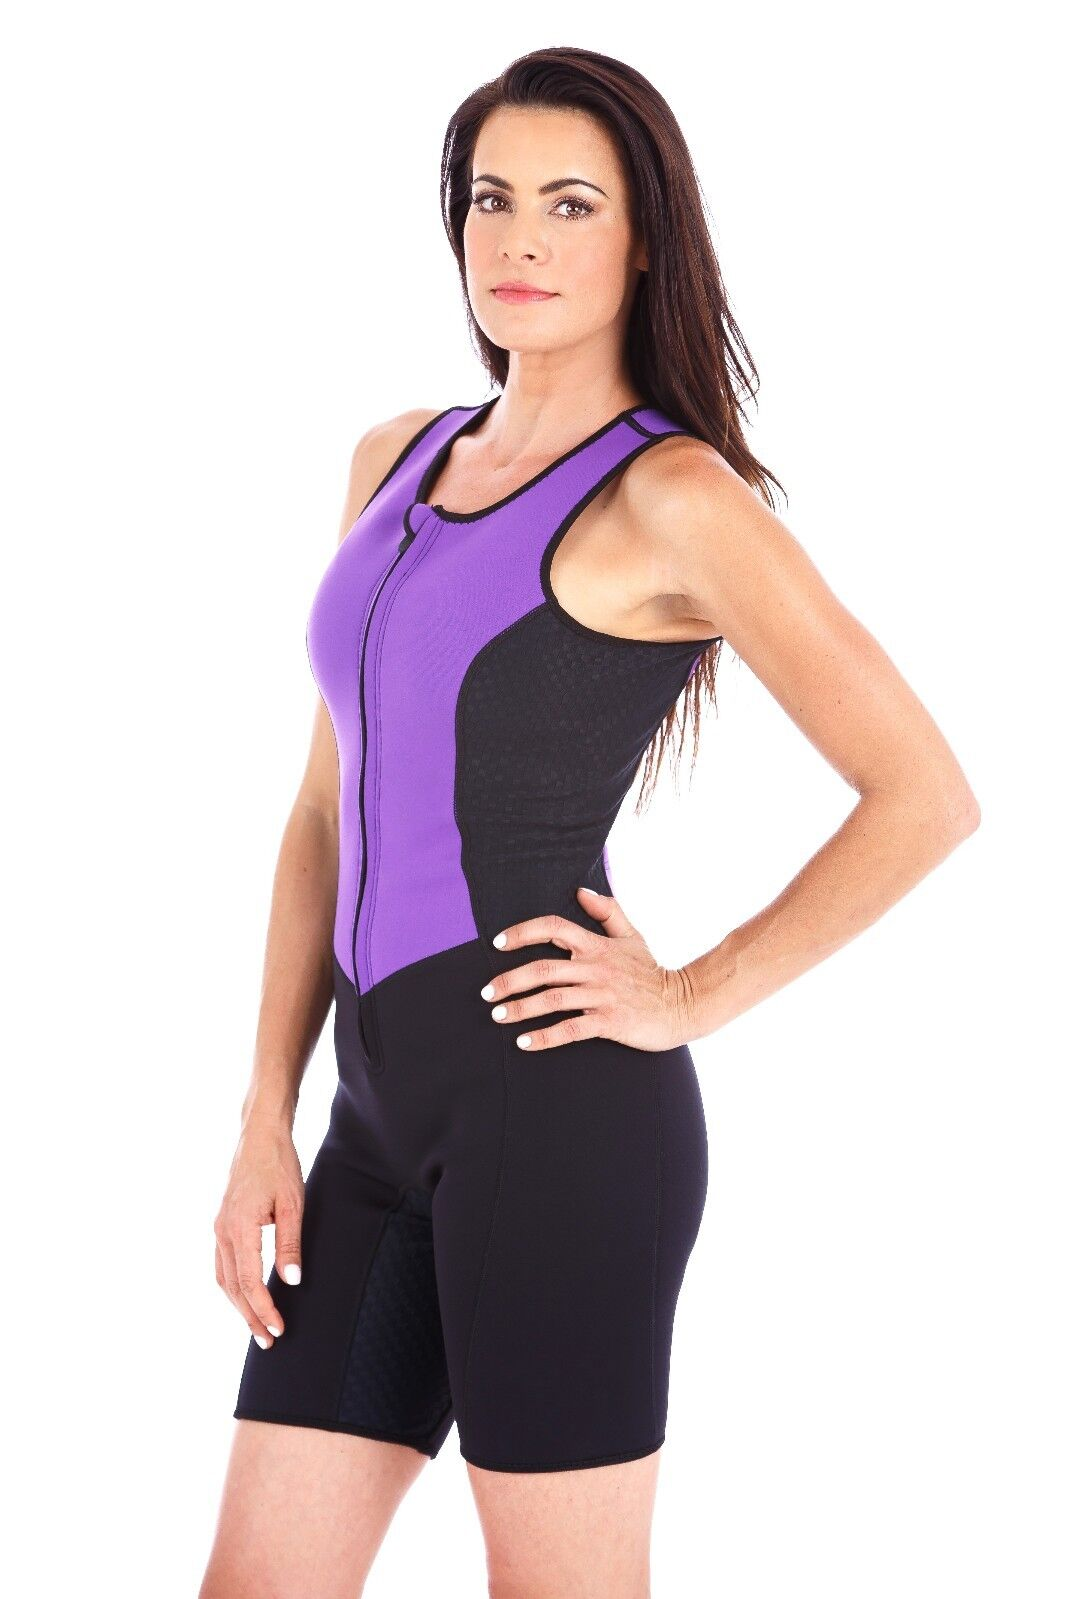 Kutting Weight Neoprene Weight Loss One-piece Women's Sauna Suit Fitness Apparel